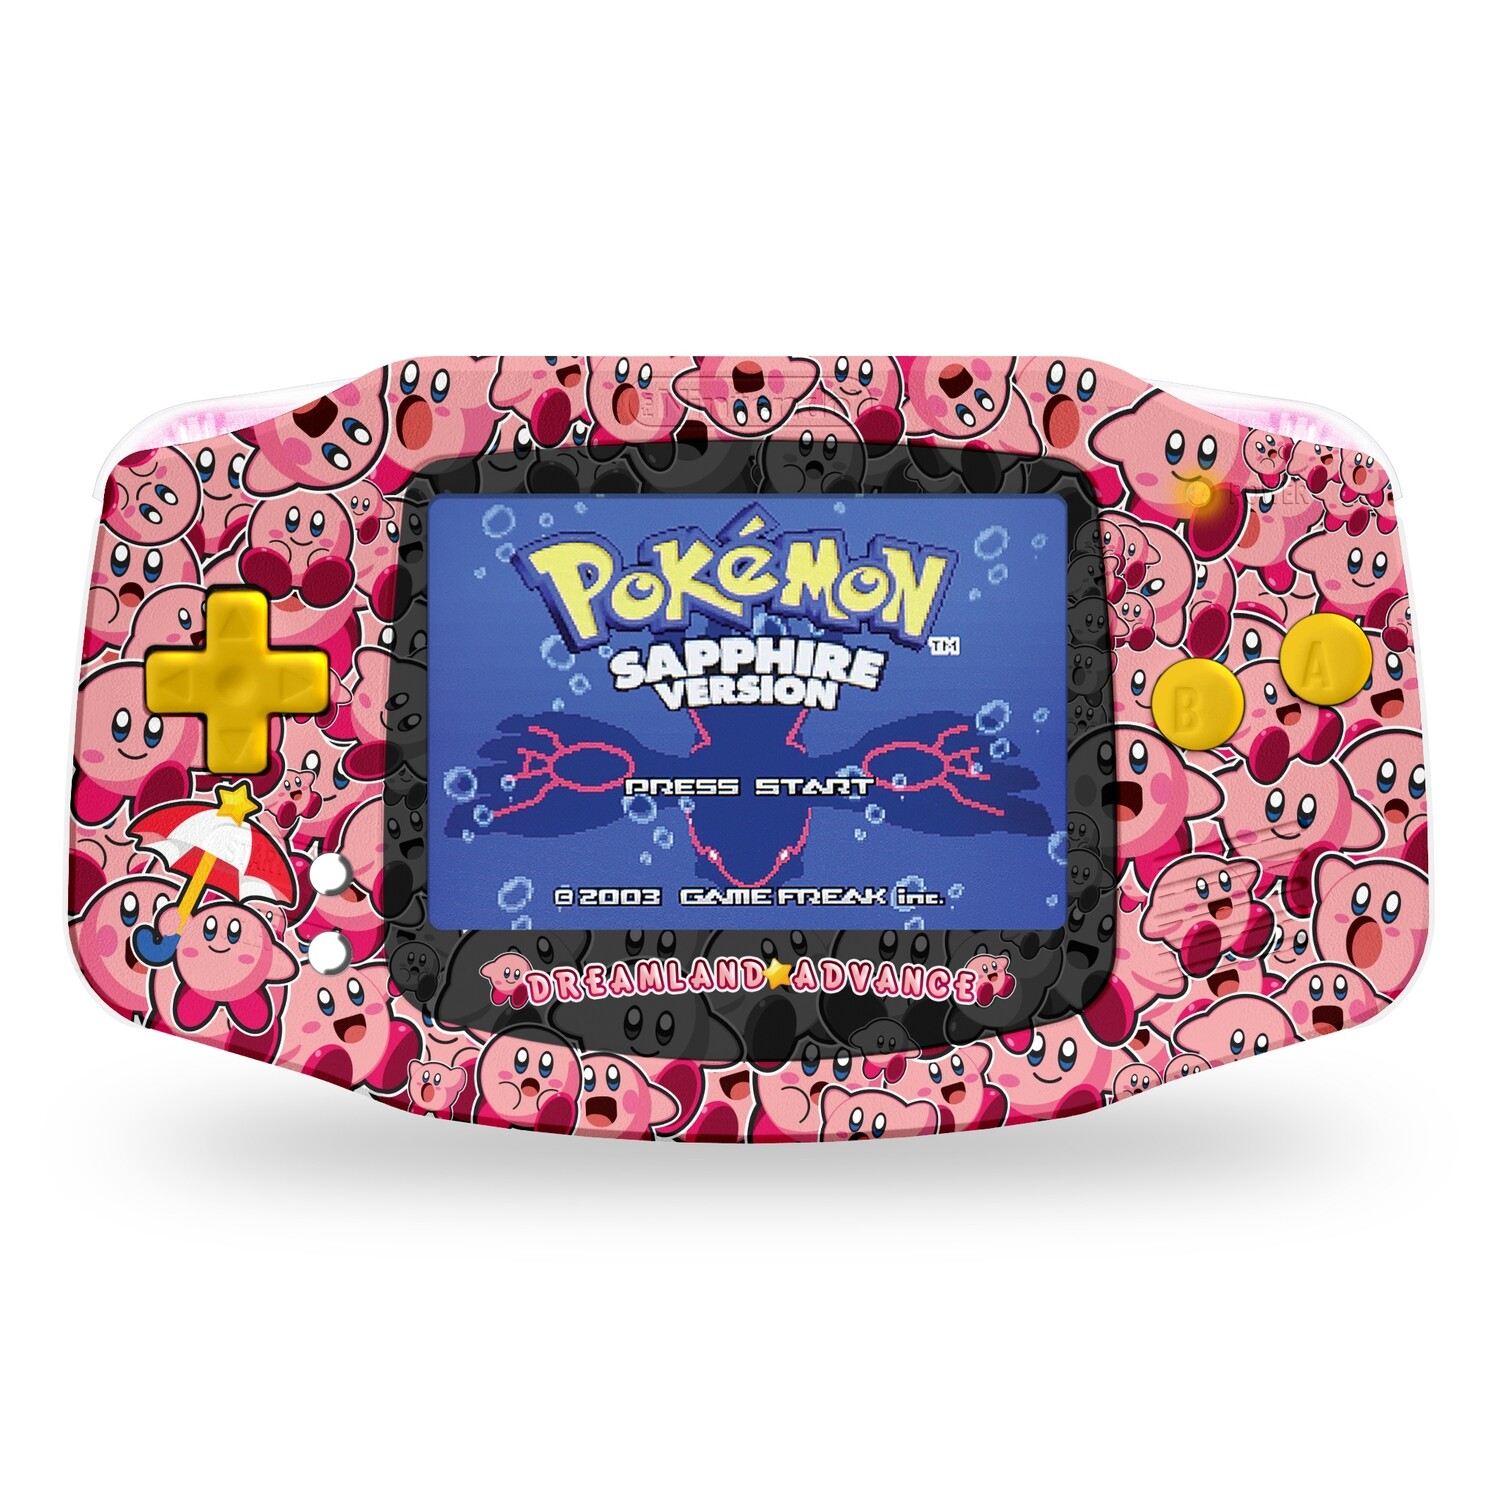 Game Boy Advance: Prestige Edition (Kirby)